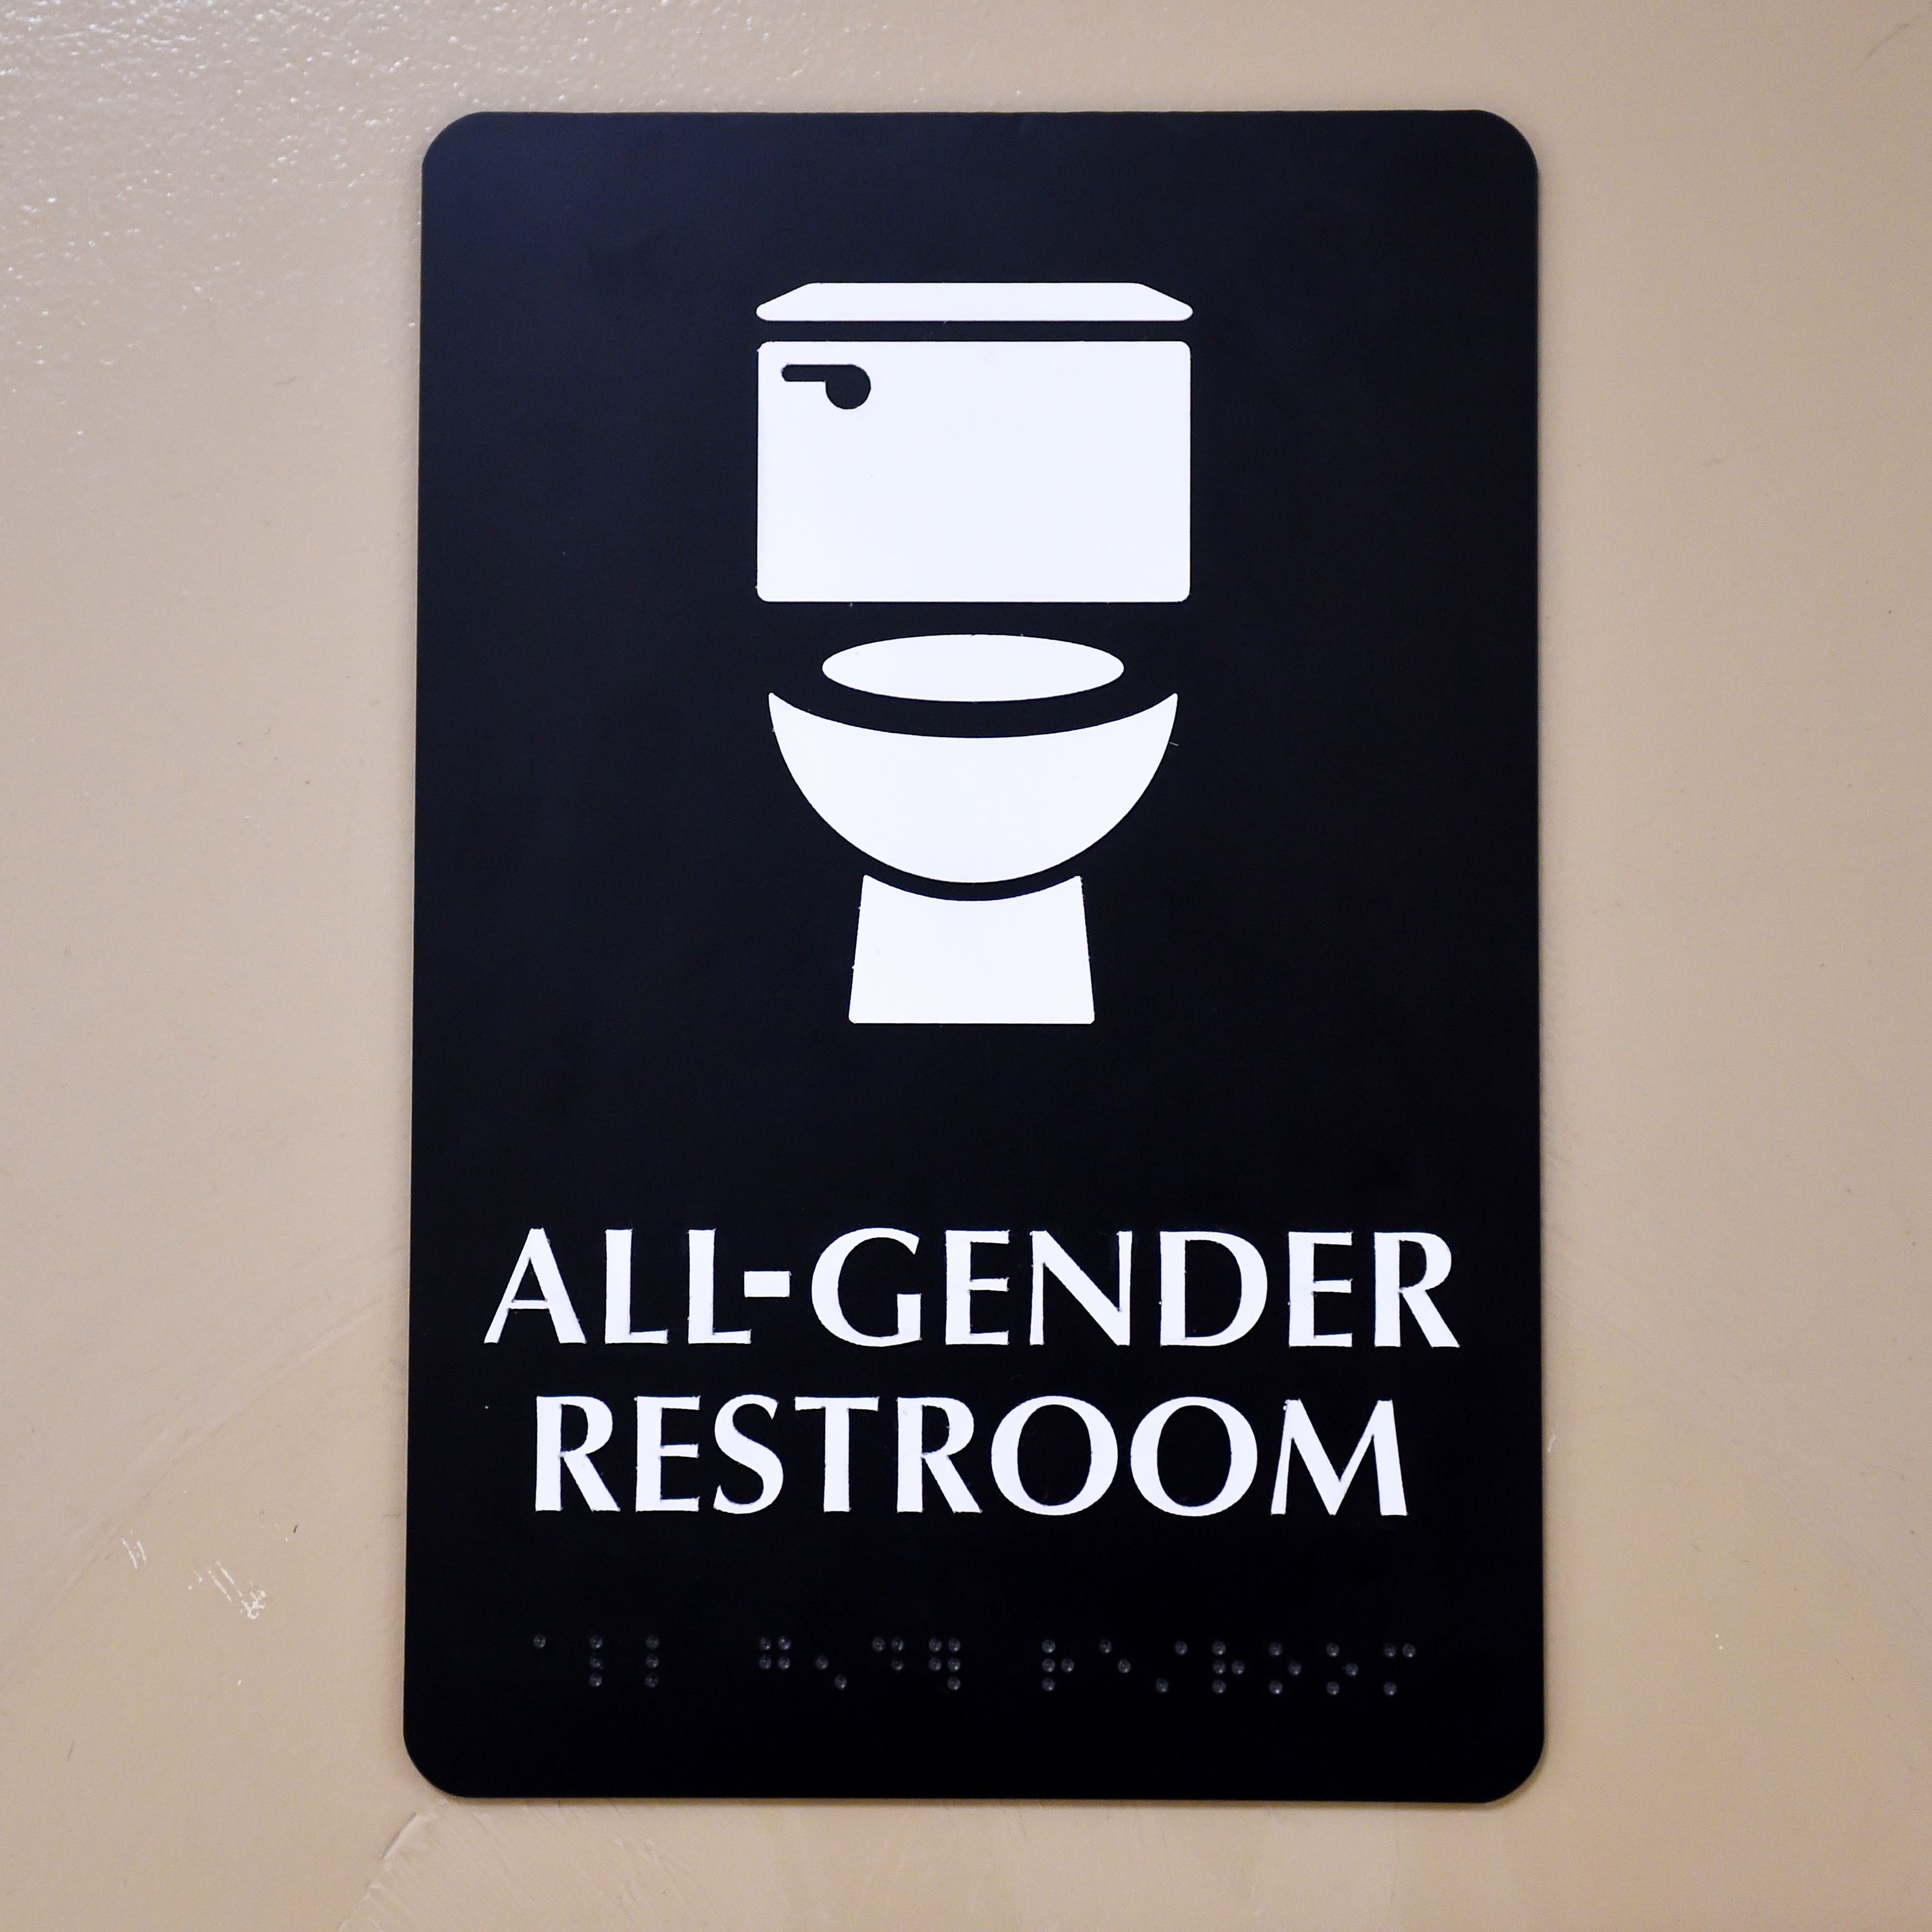 Virginia school board takes transgender bathroom case to Supreme Court